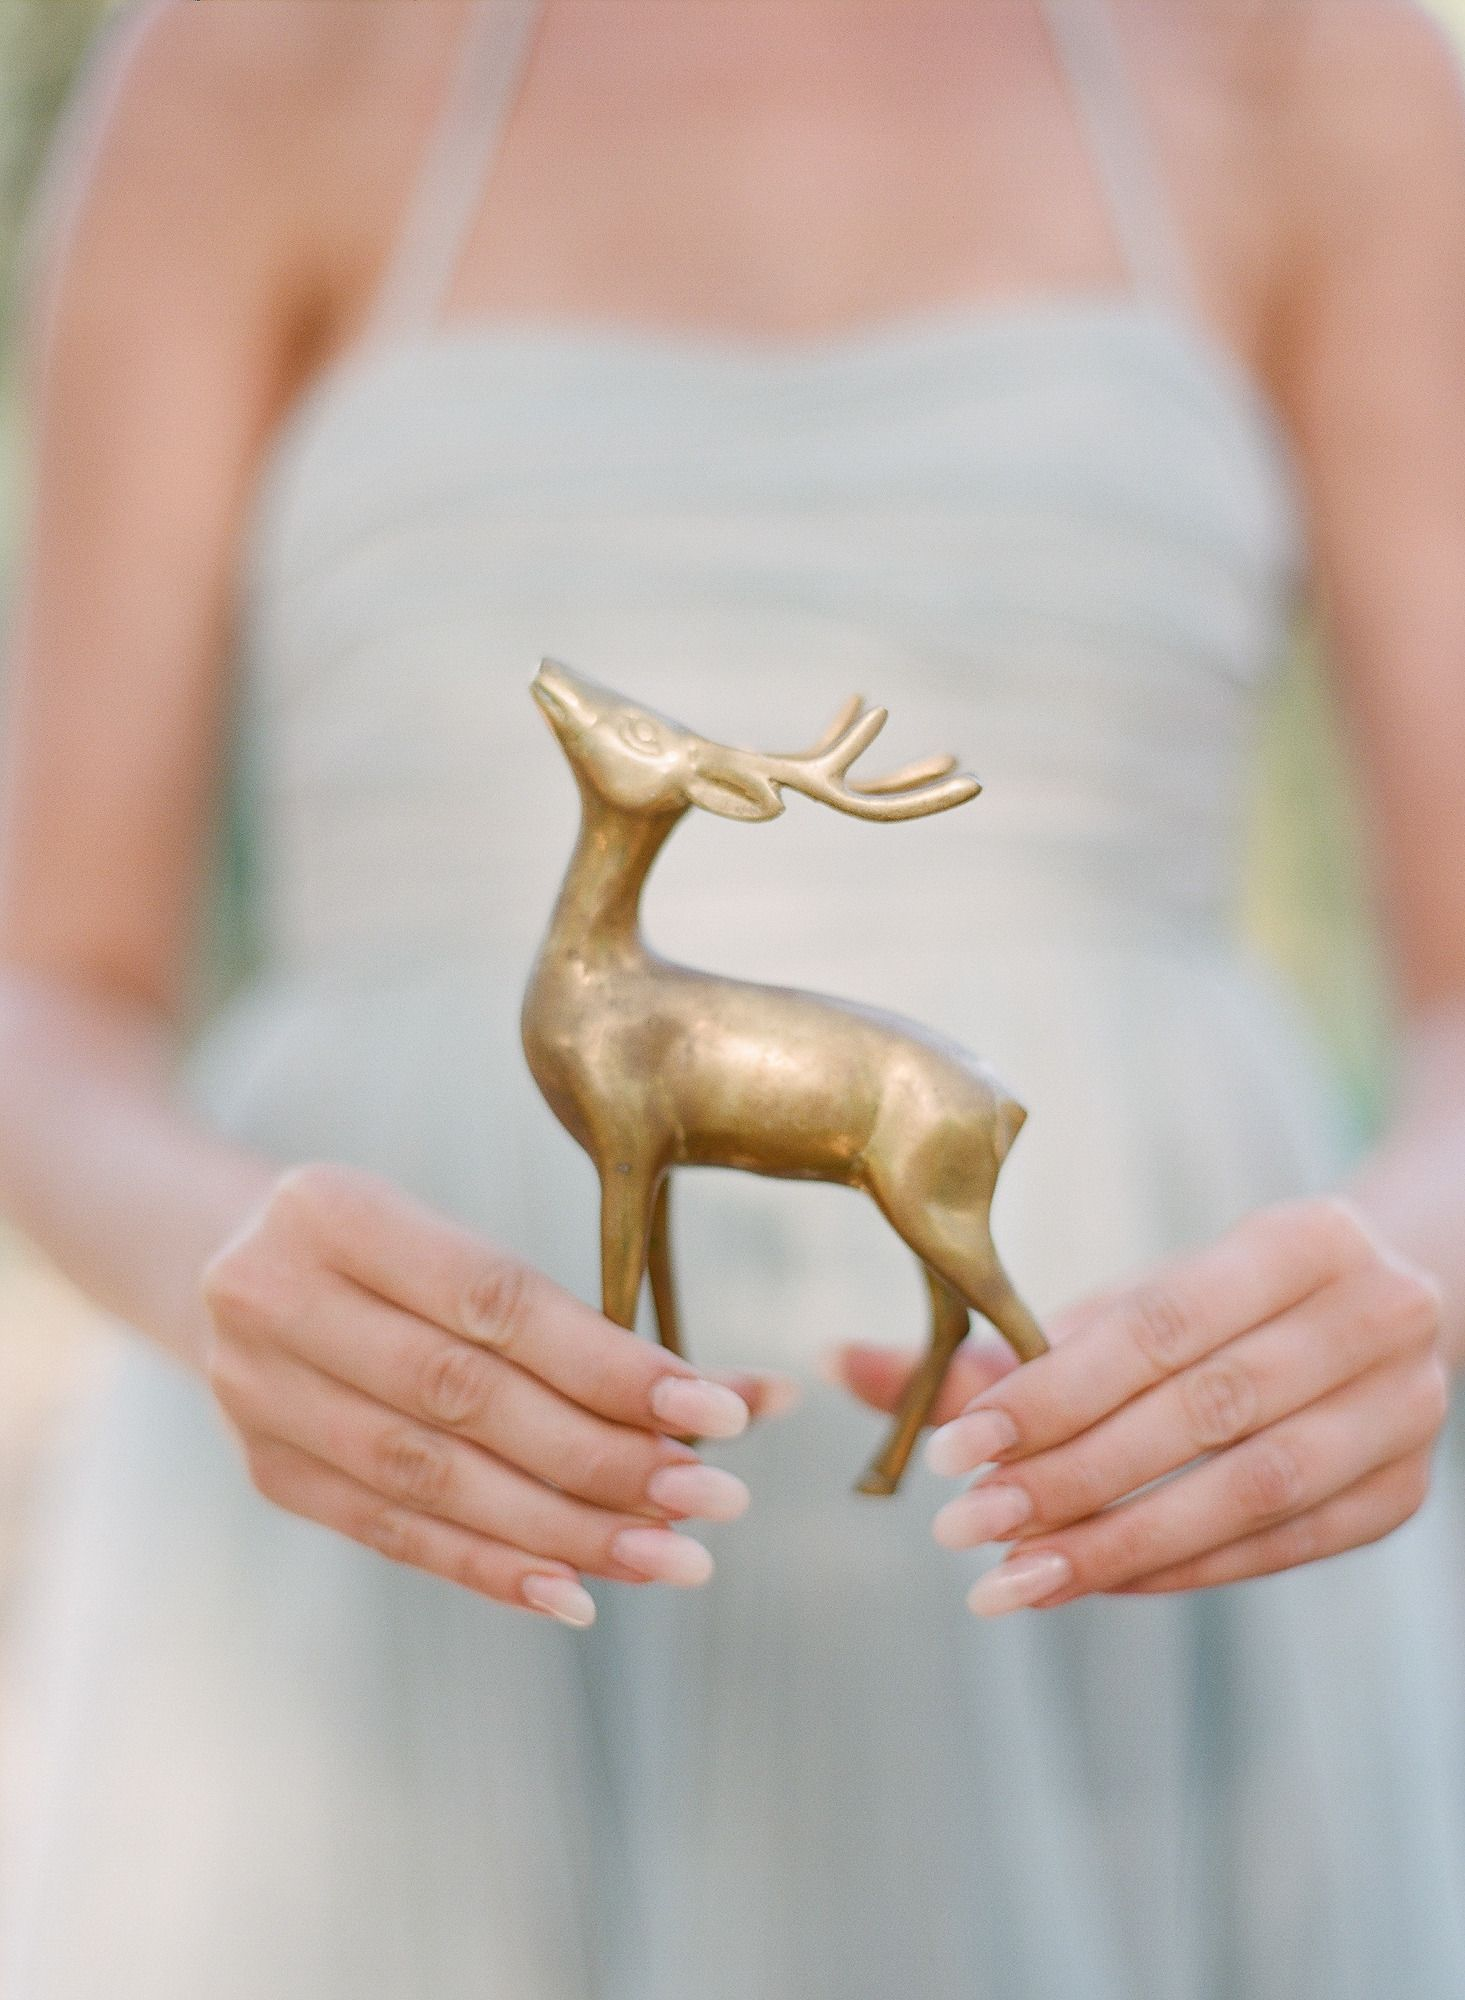 fall wedding details, gold #deer | Photography: Blush Wedding Photography - blushweddingphotography.com  Read More: http://www.stylemepretty.com/2014/04/22/whimsical-autumn-wedding-inspiration/